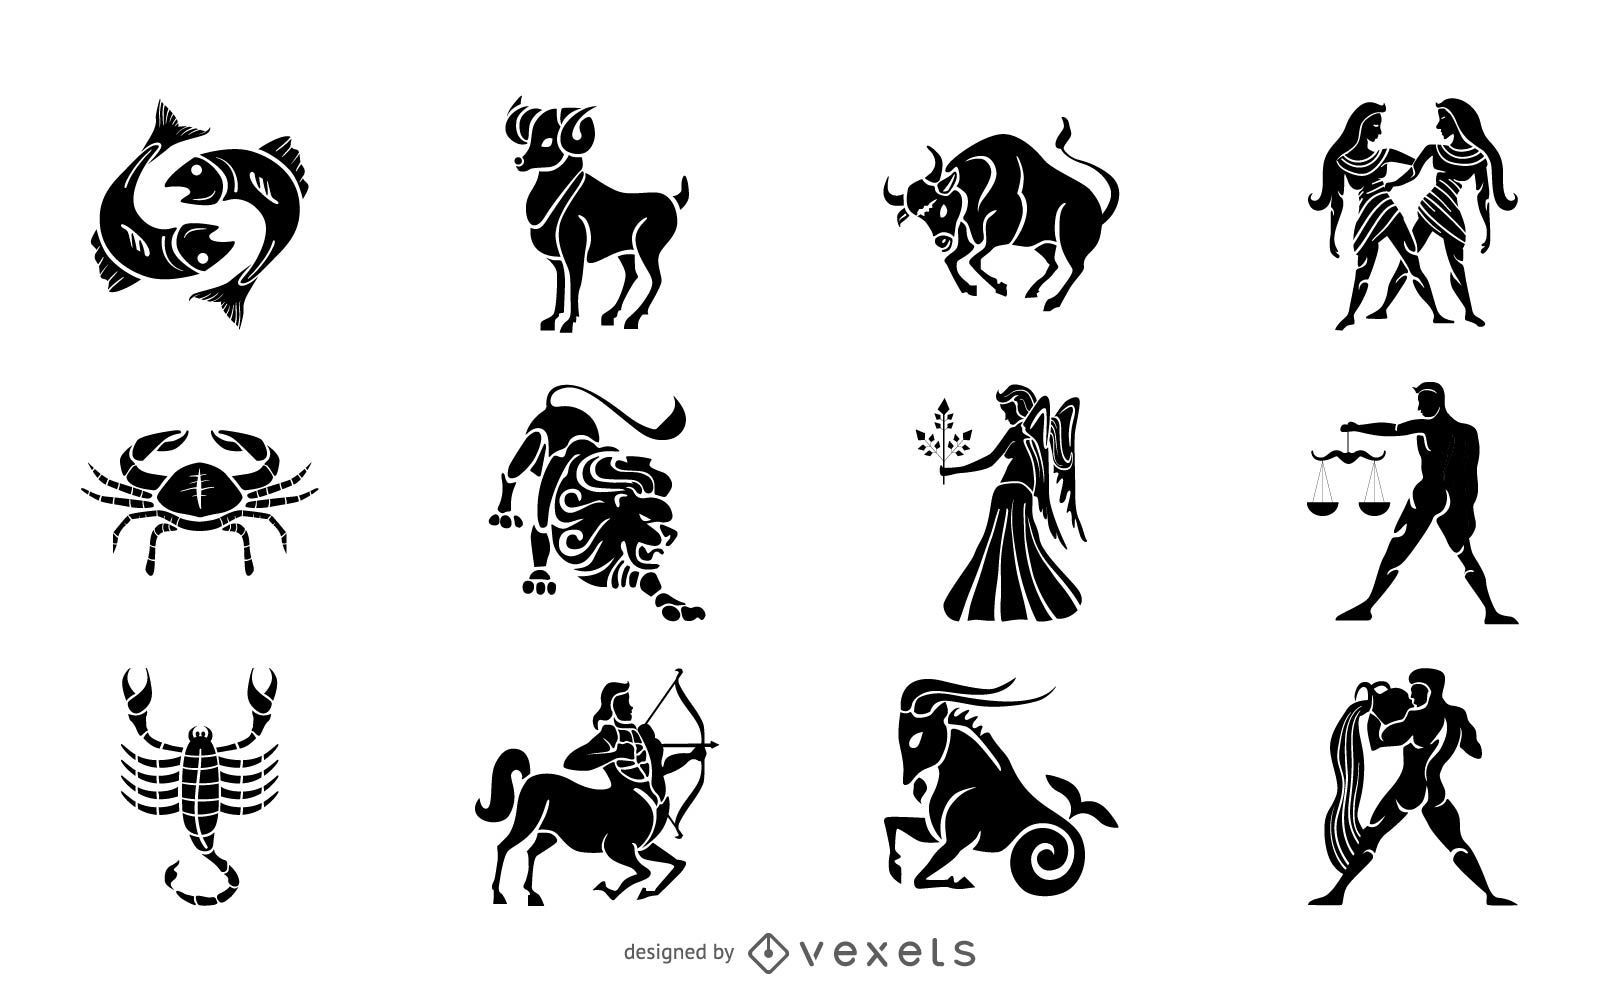 Zodiac Signs Silhouette Illustration Set  Vector Download. Hobo Signs Of Stroke. Farmer Signs Of Stroke. Gdm Signs. Infographic Eft Signs Of Stroke. Nonverbal Student Signs. Tonsil Signs. Cervical Signs. Girl Toddler Signs